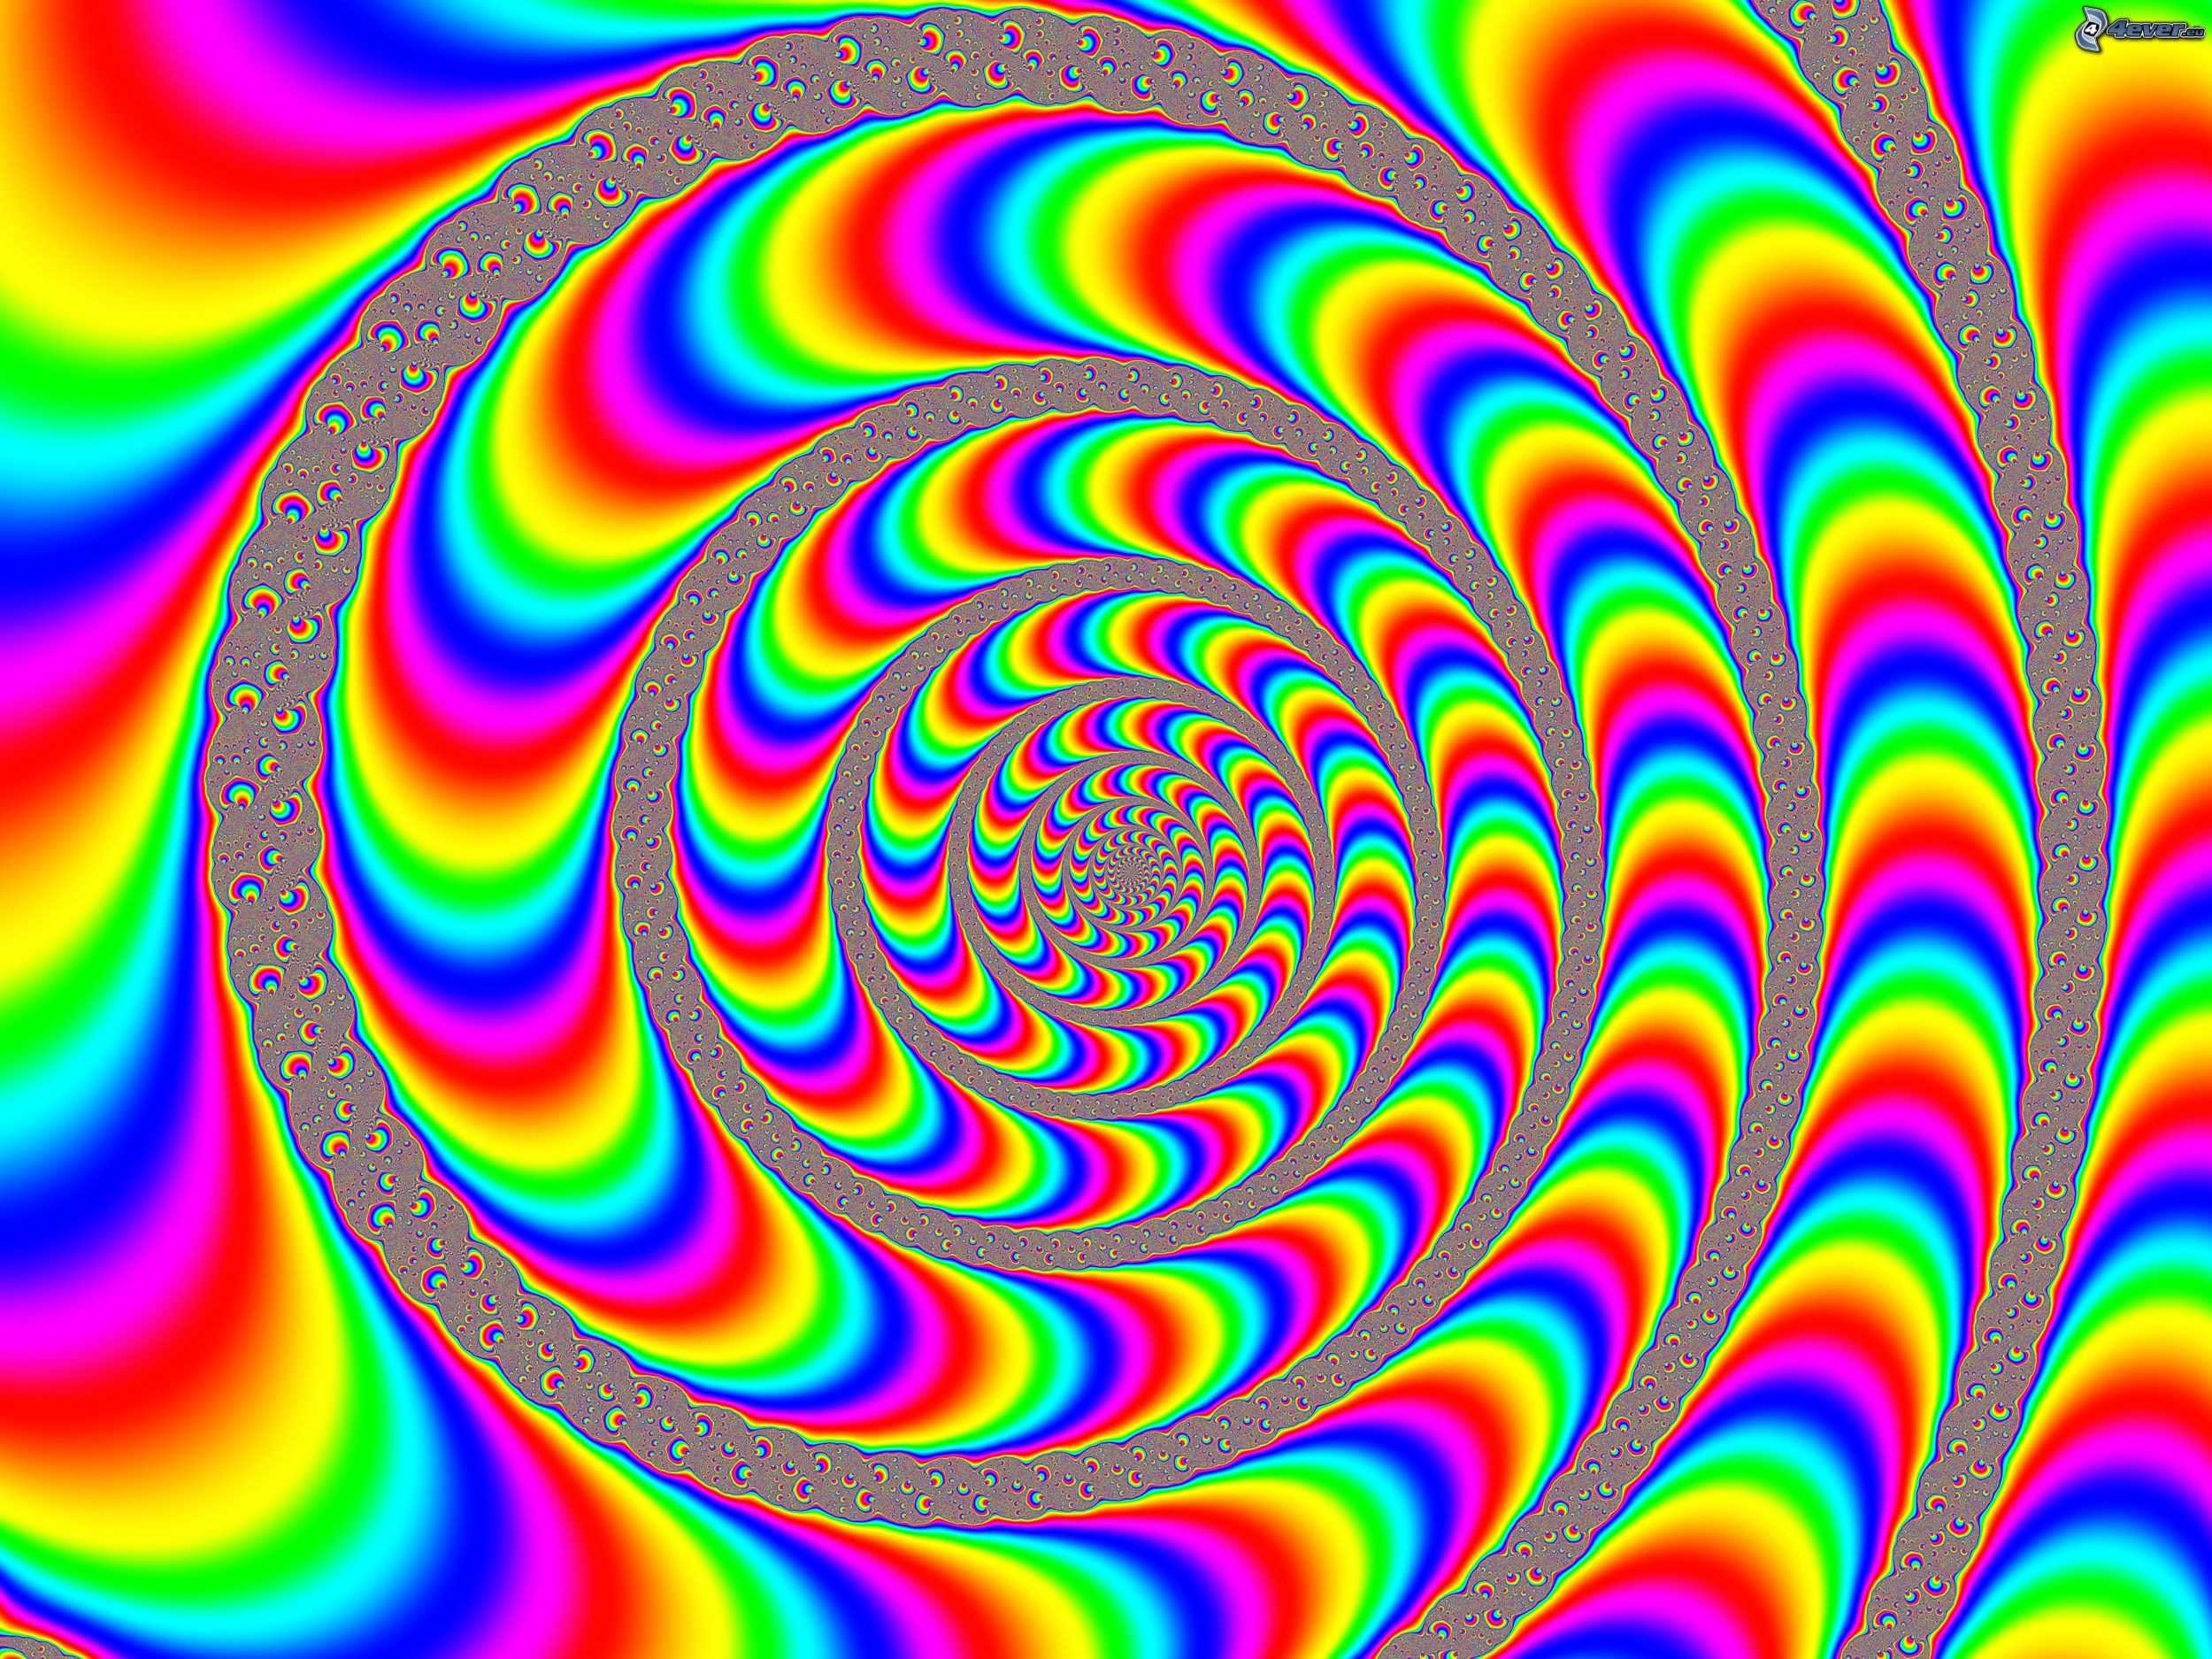 Res: 2500x1875, Optical Illusion Wallpaper Full Hd Images Of Mobile Illusions Art